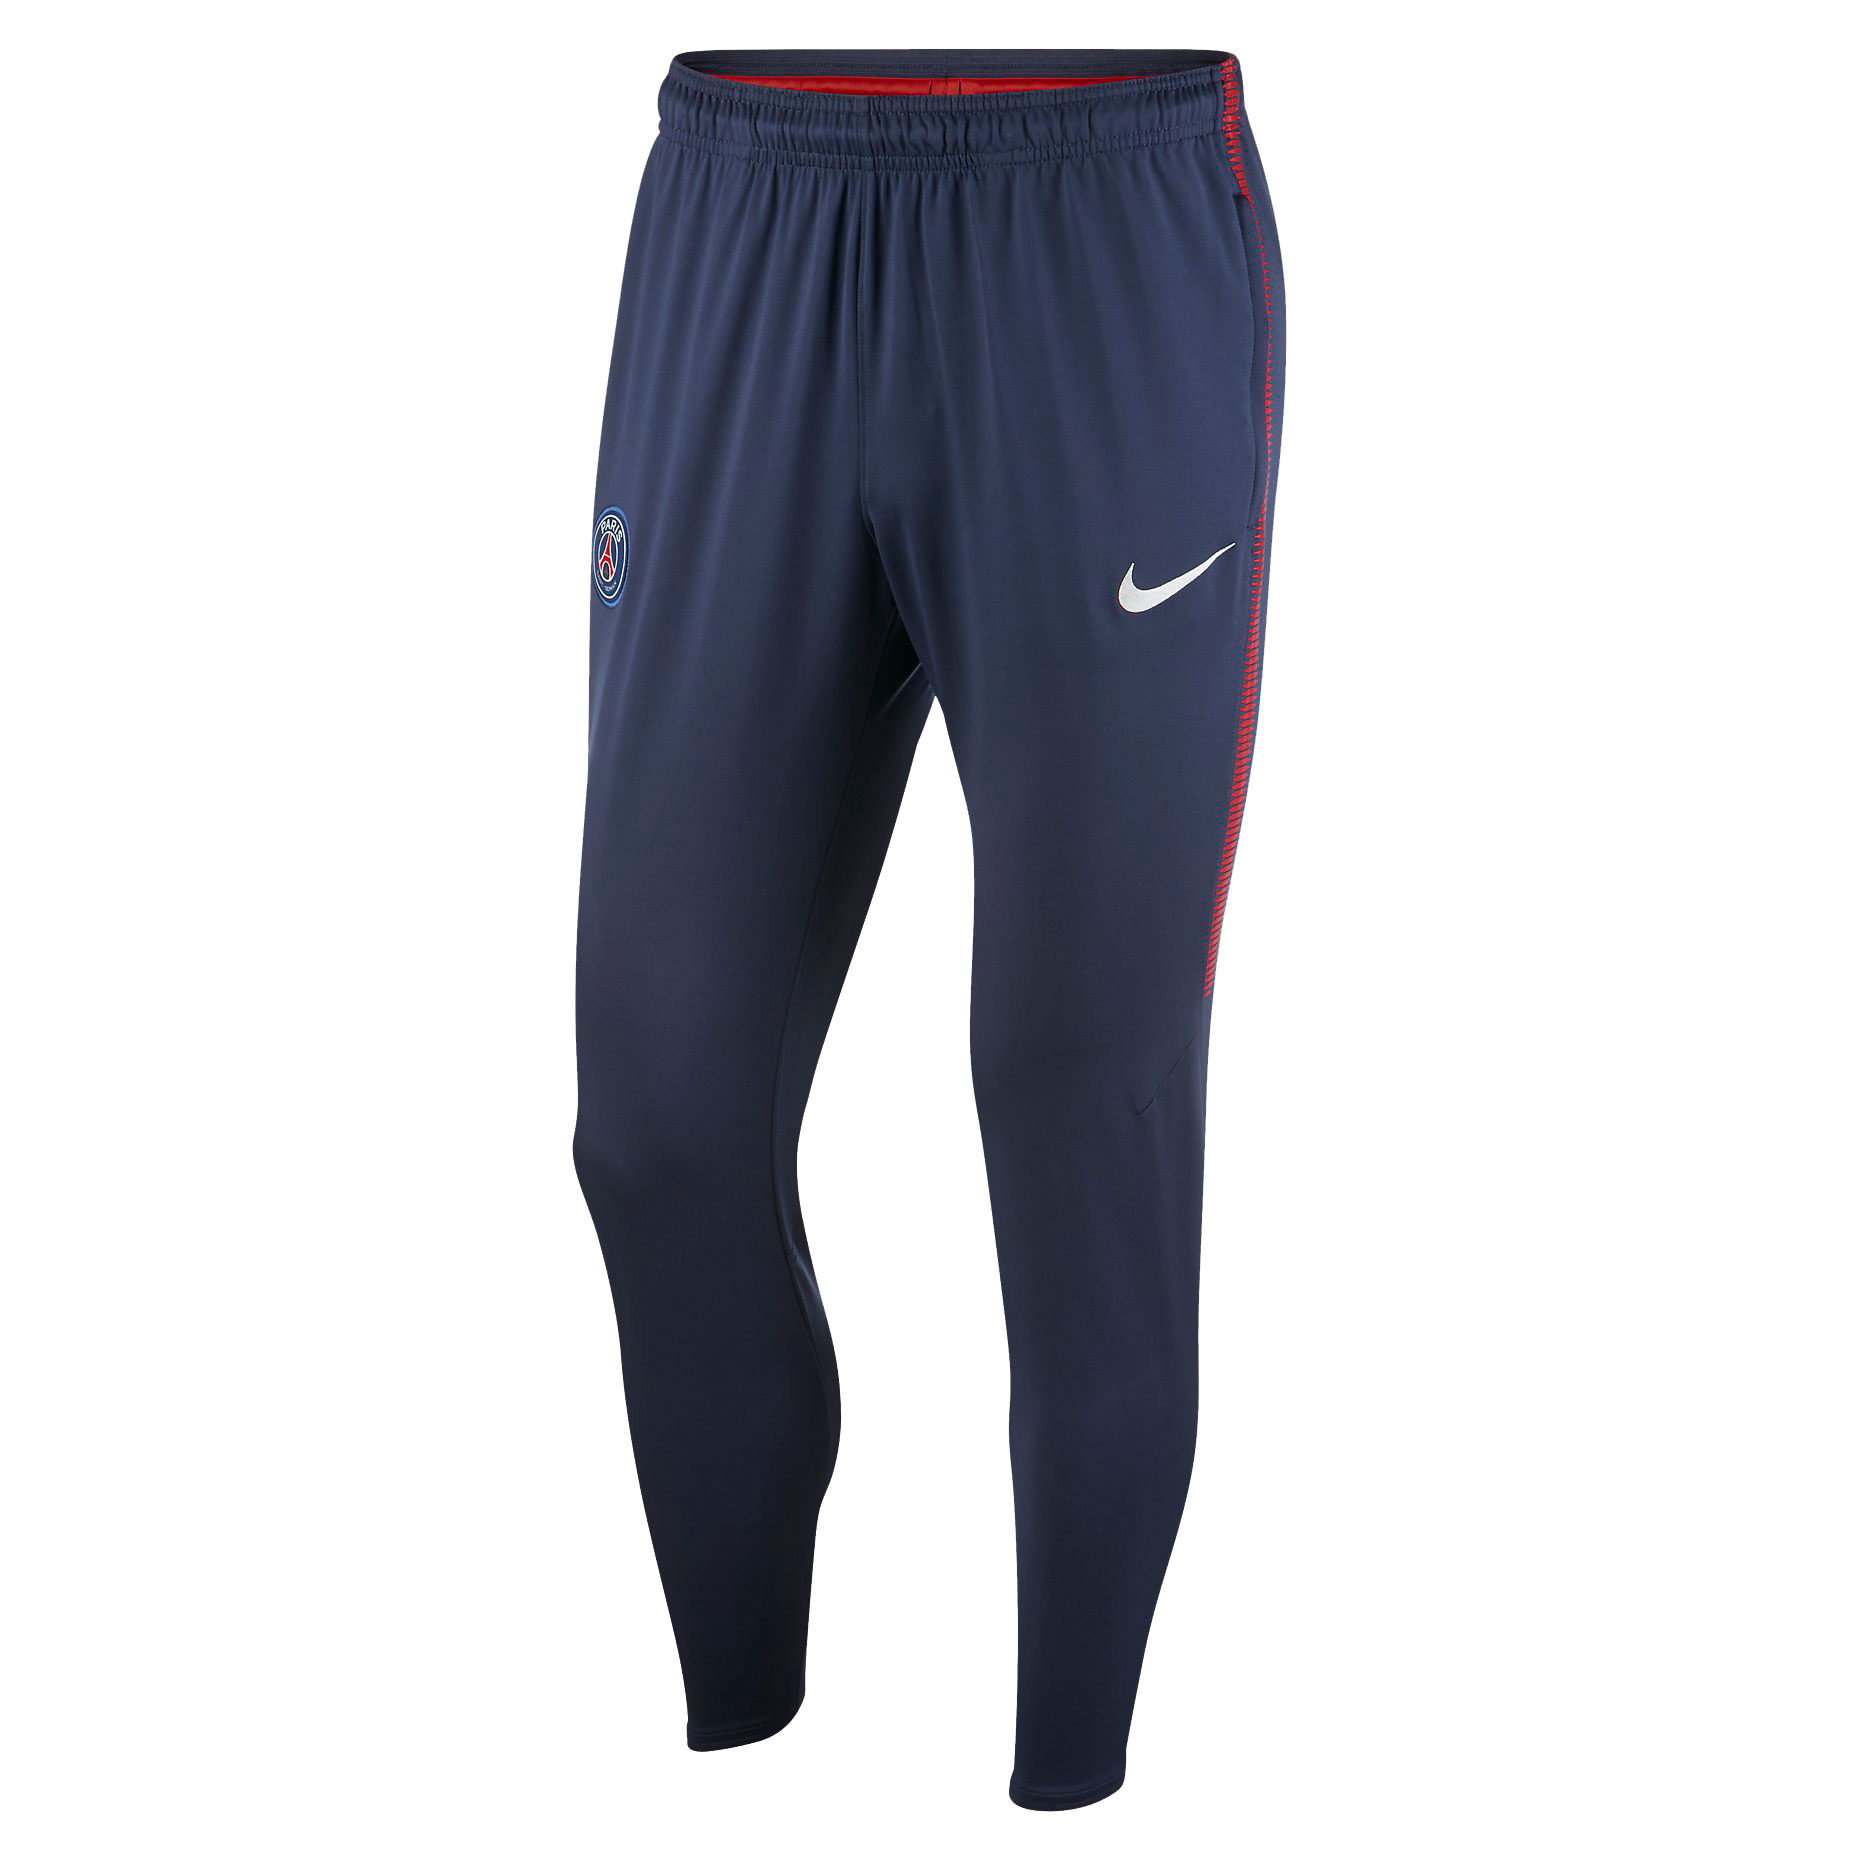 PSG Tech Training Pants 2017 / 2018 - Navy - L